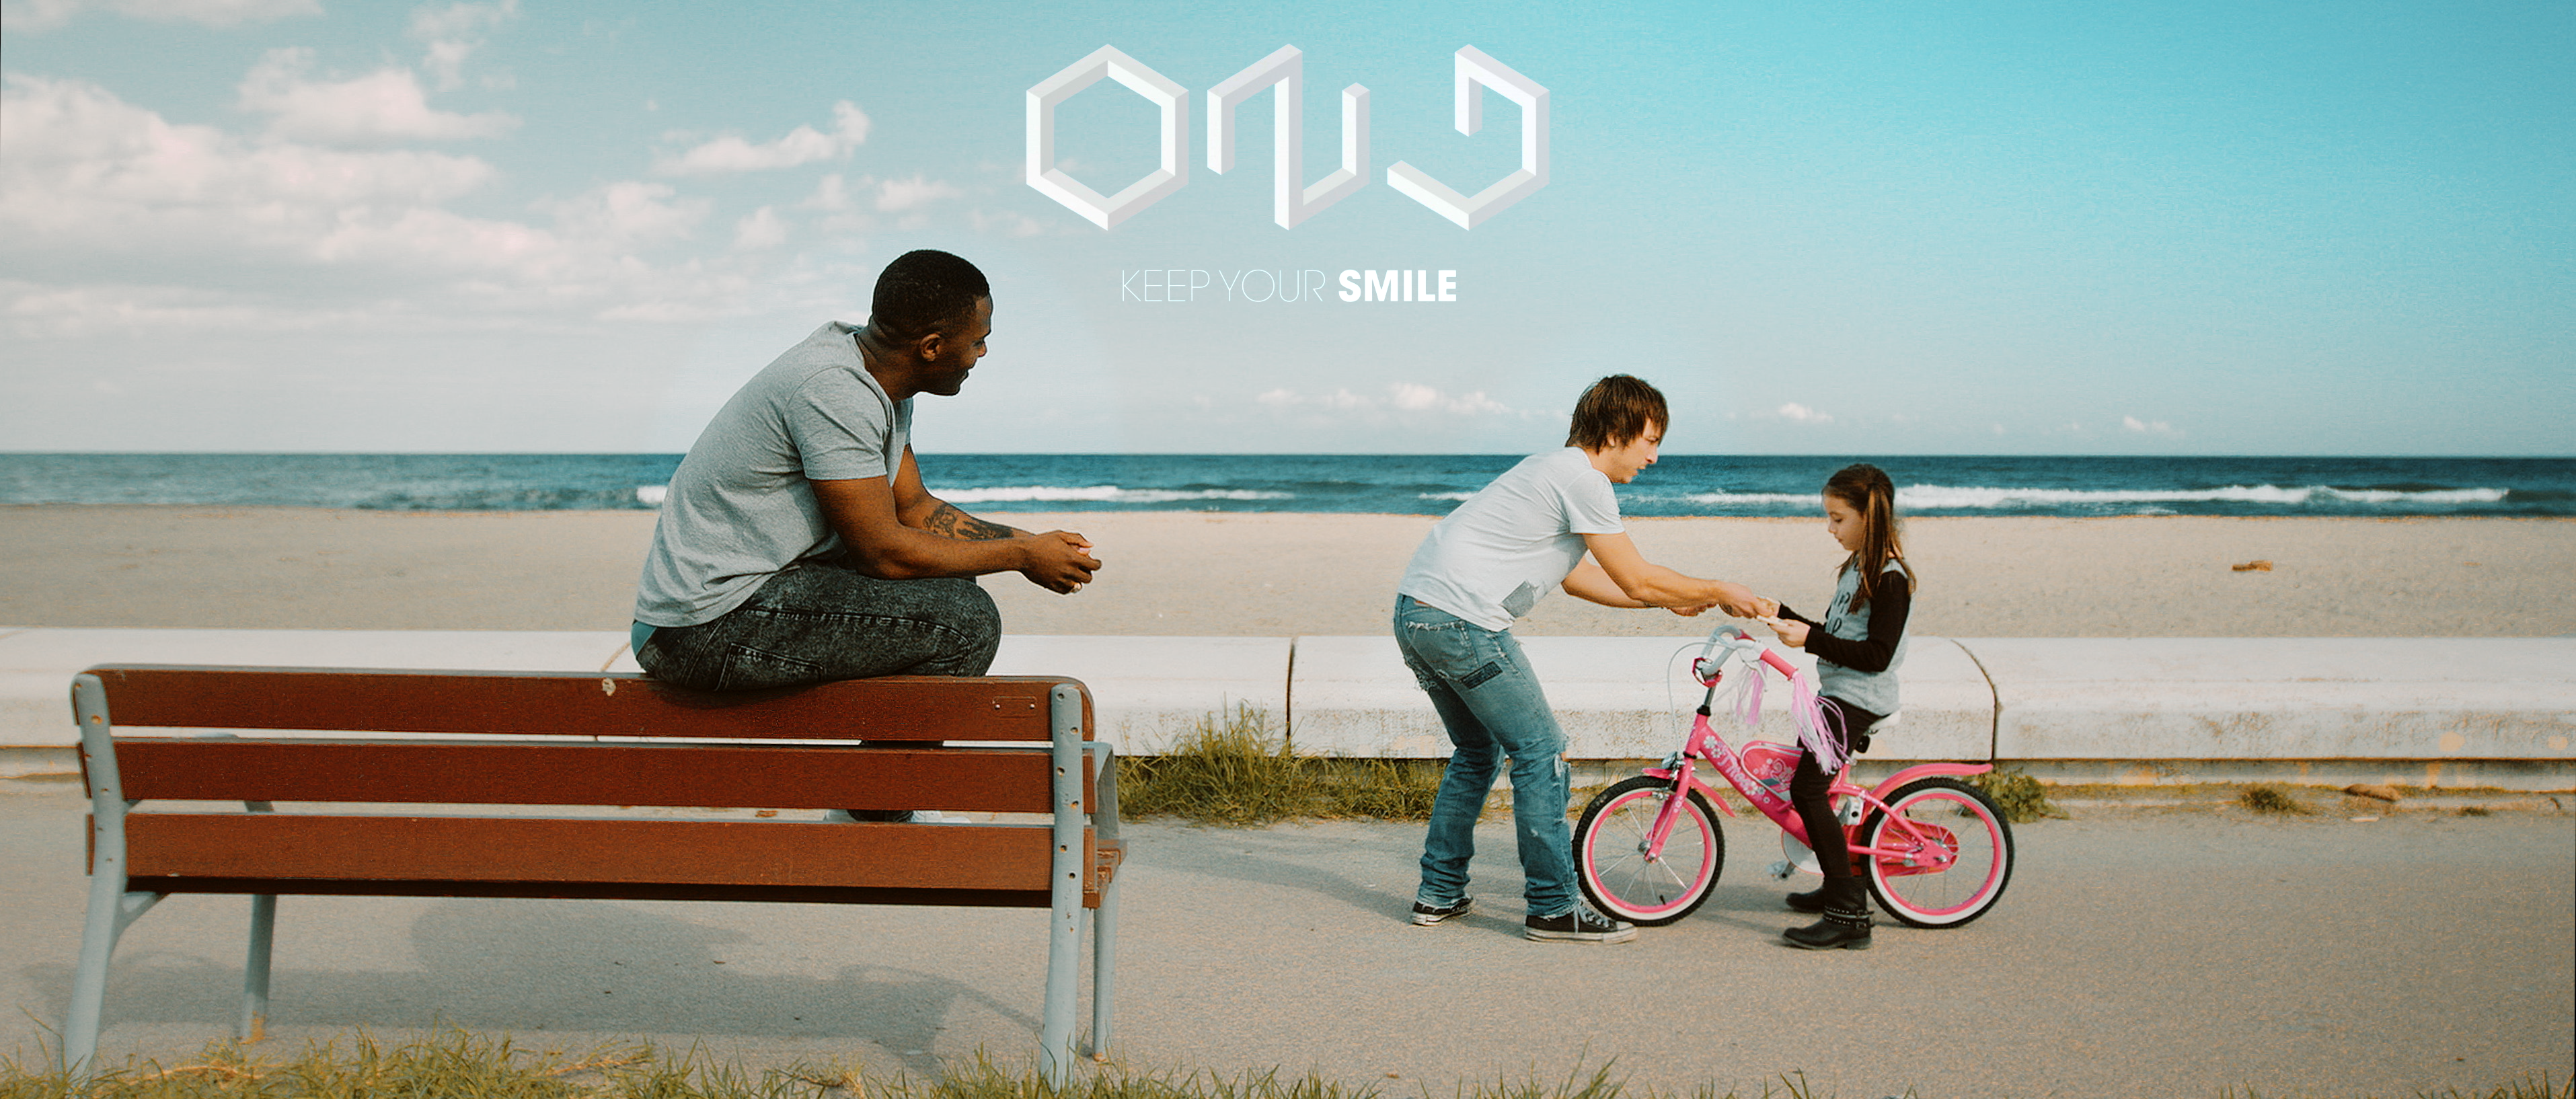 ONJ – KEEP YOUR SMILE